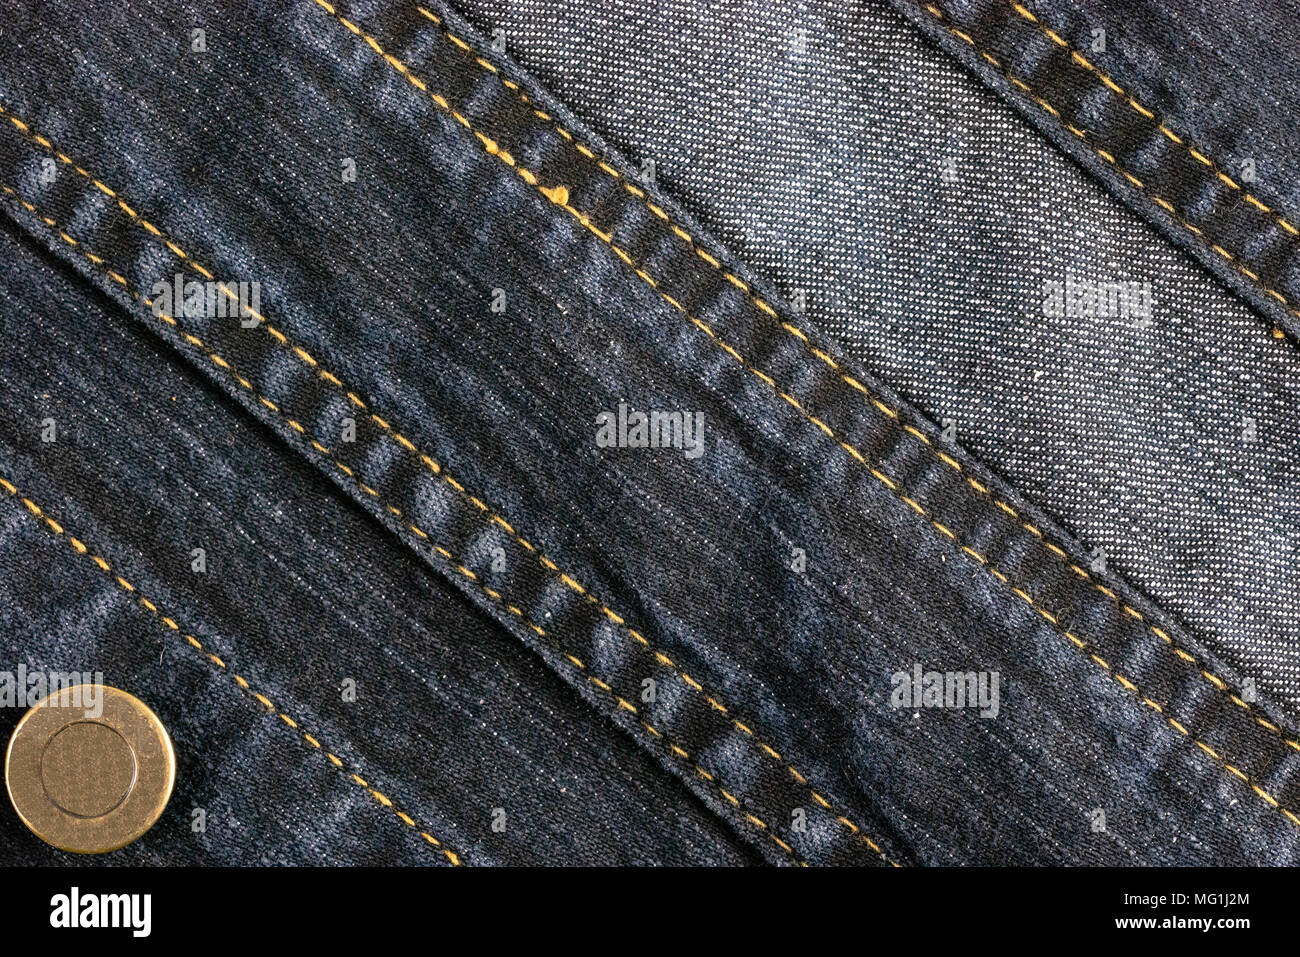 Abstract background and texture of denim jeans and buttoned - Stock Image